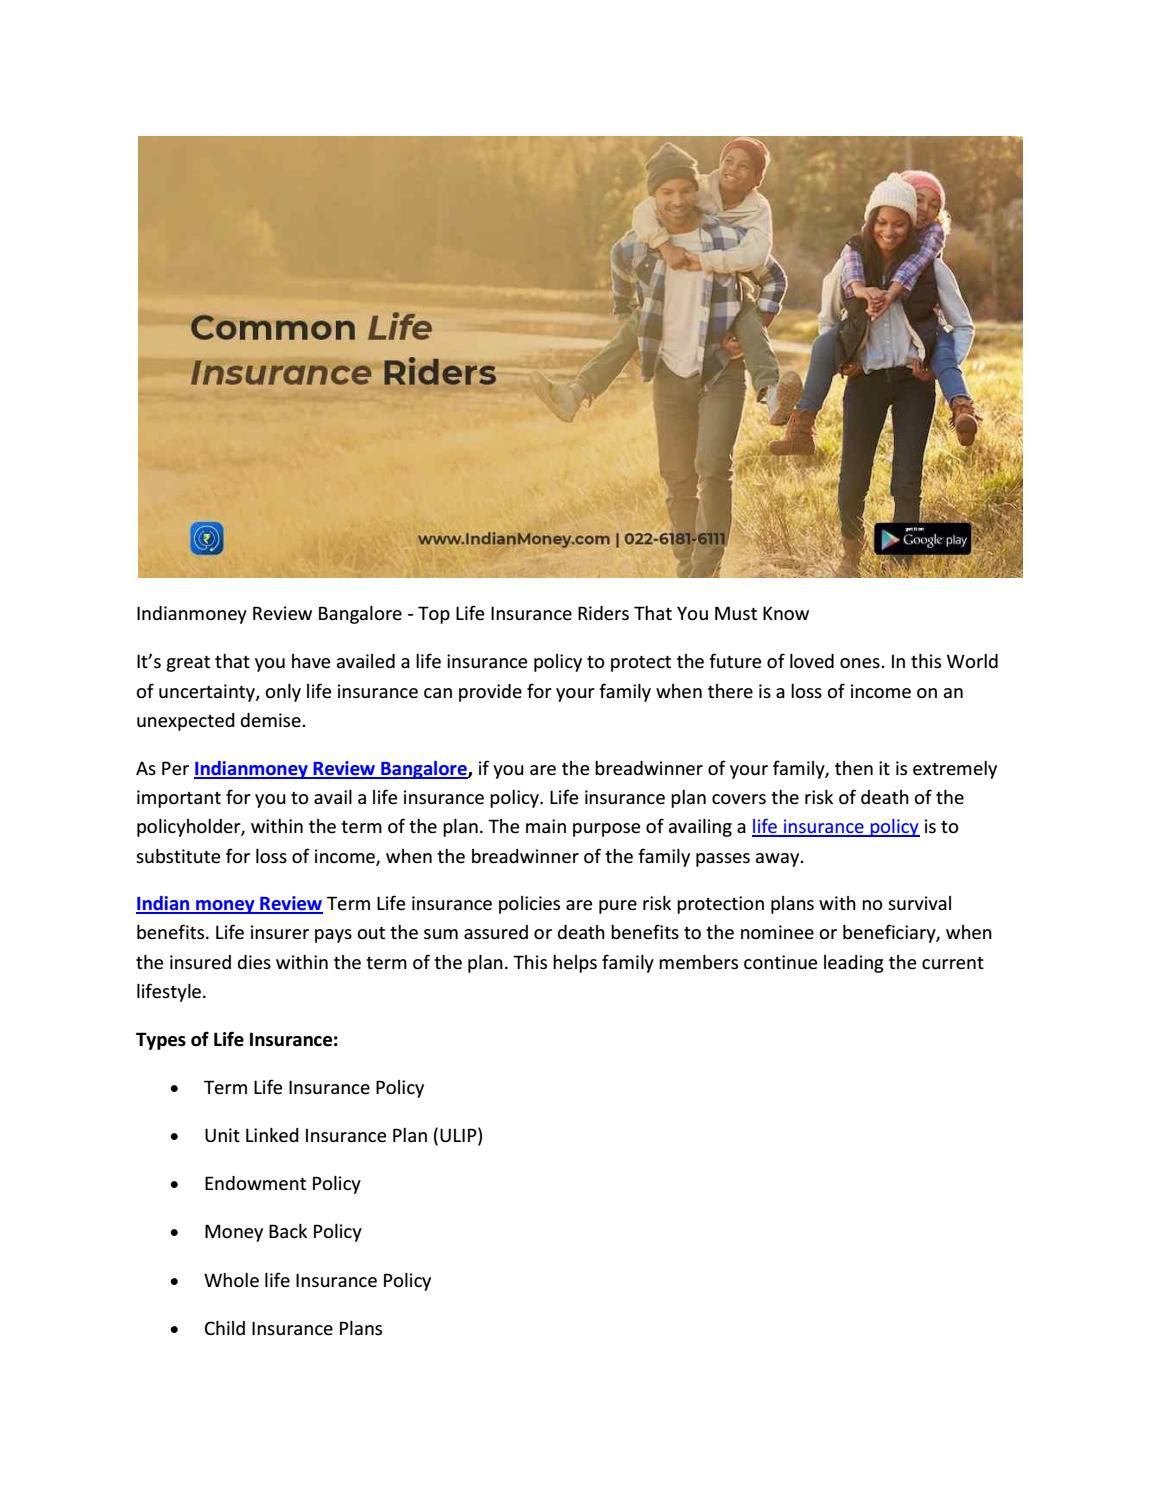 Indianmoney Review Bangalore - Top Life Insurance Riders